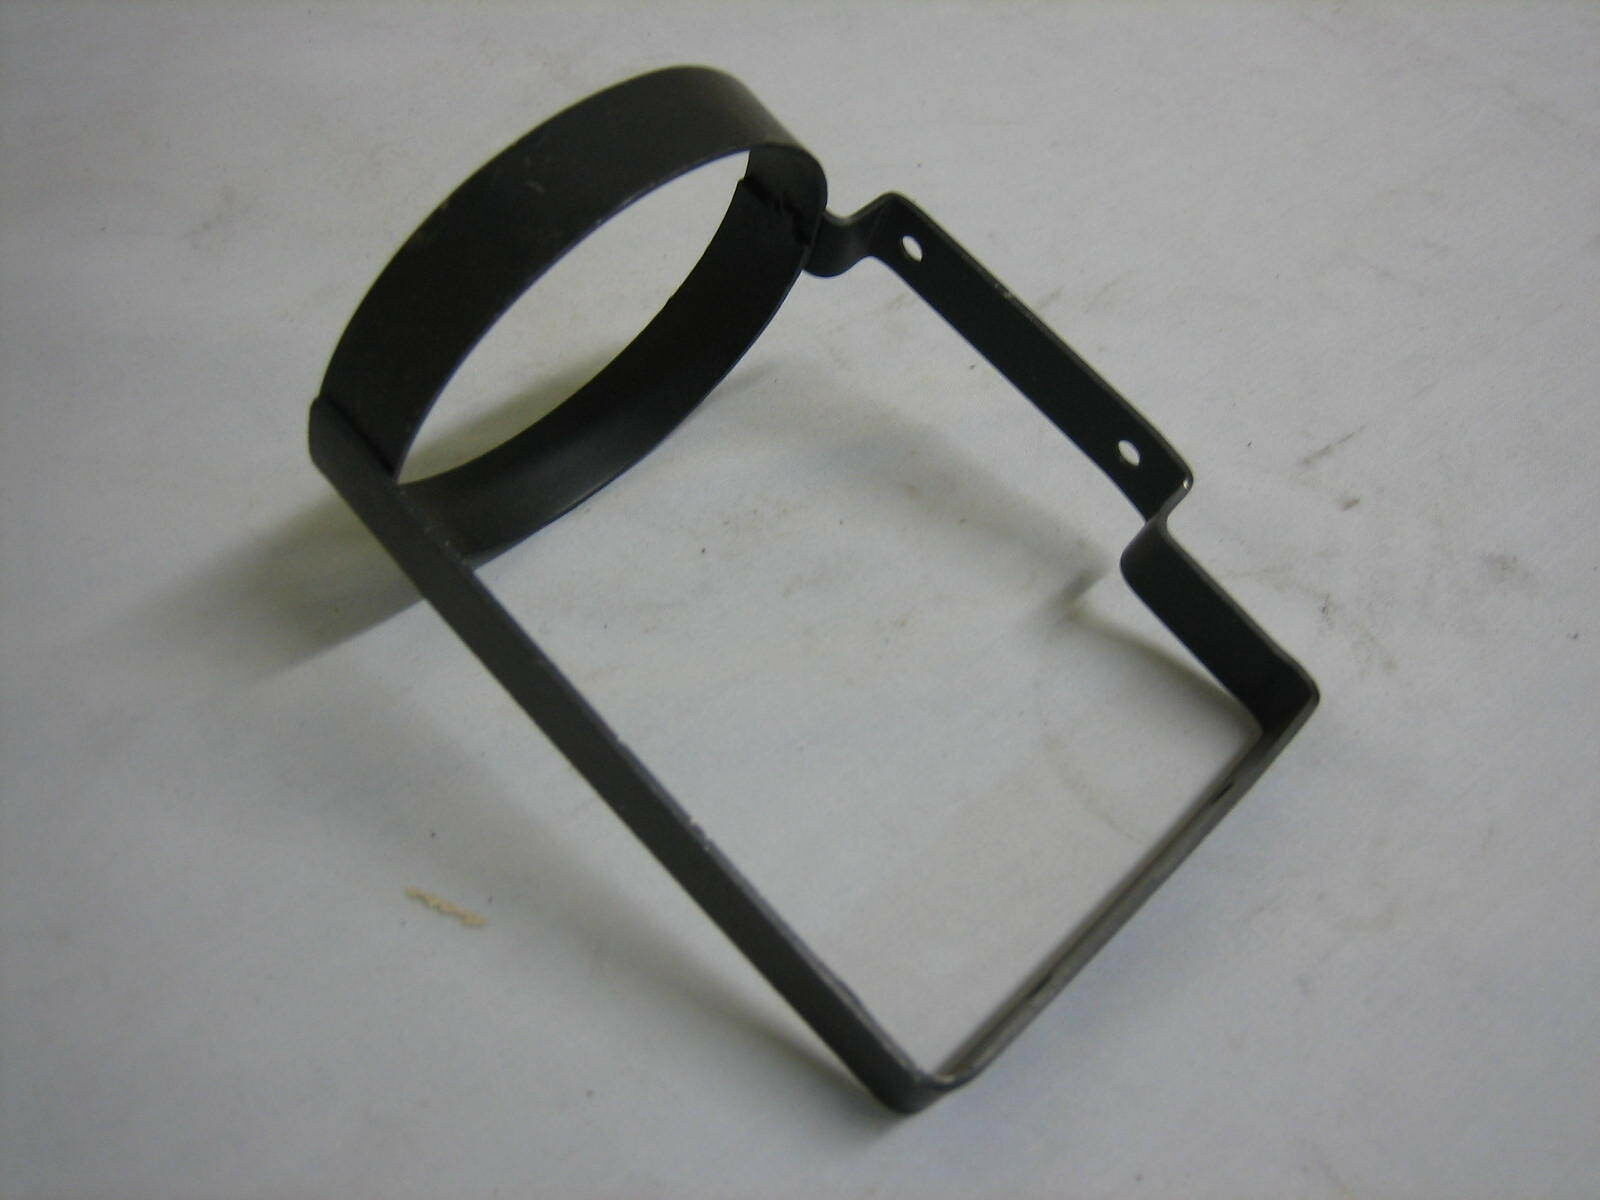 Mg Car Sales South Australia >> 361-225 Mg Mga Washer Pump Bracket - AUD 16.65 | PicClick AU